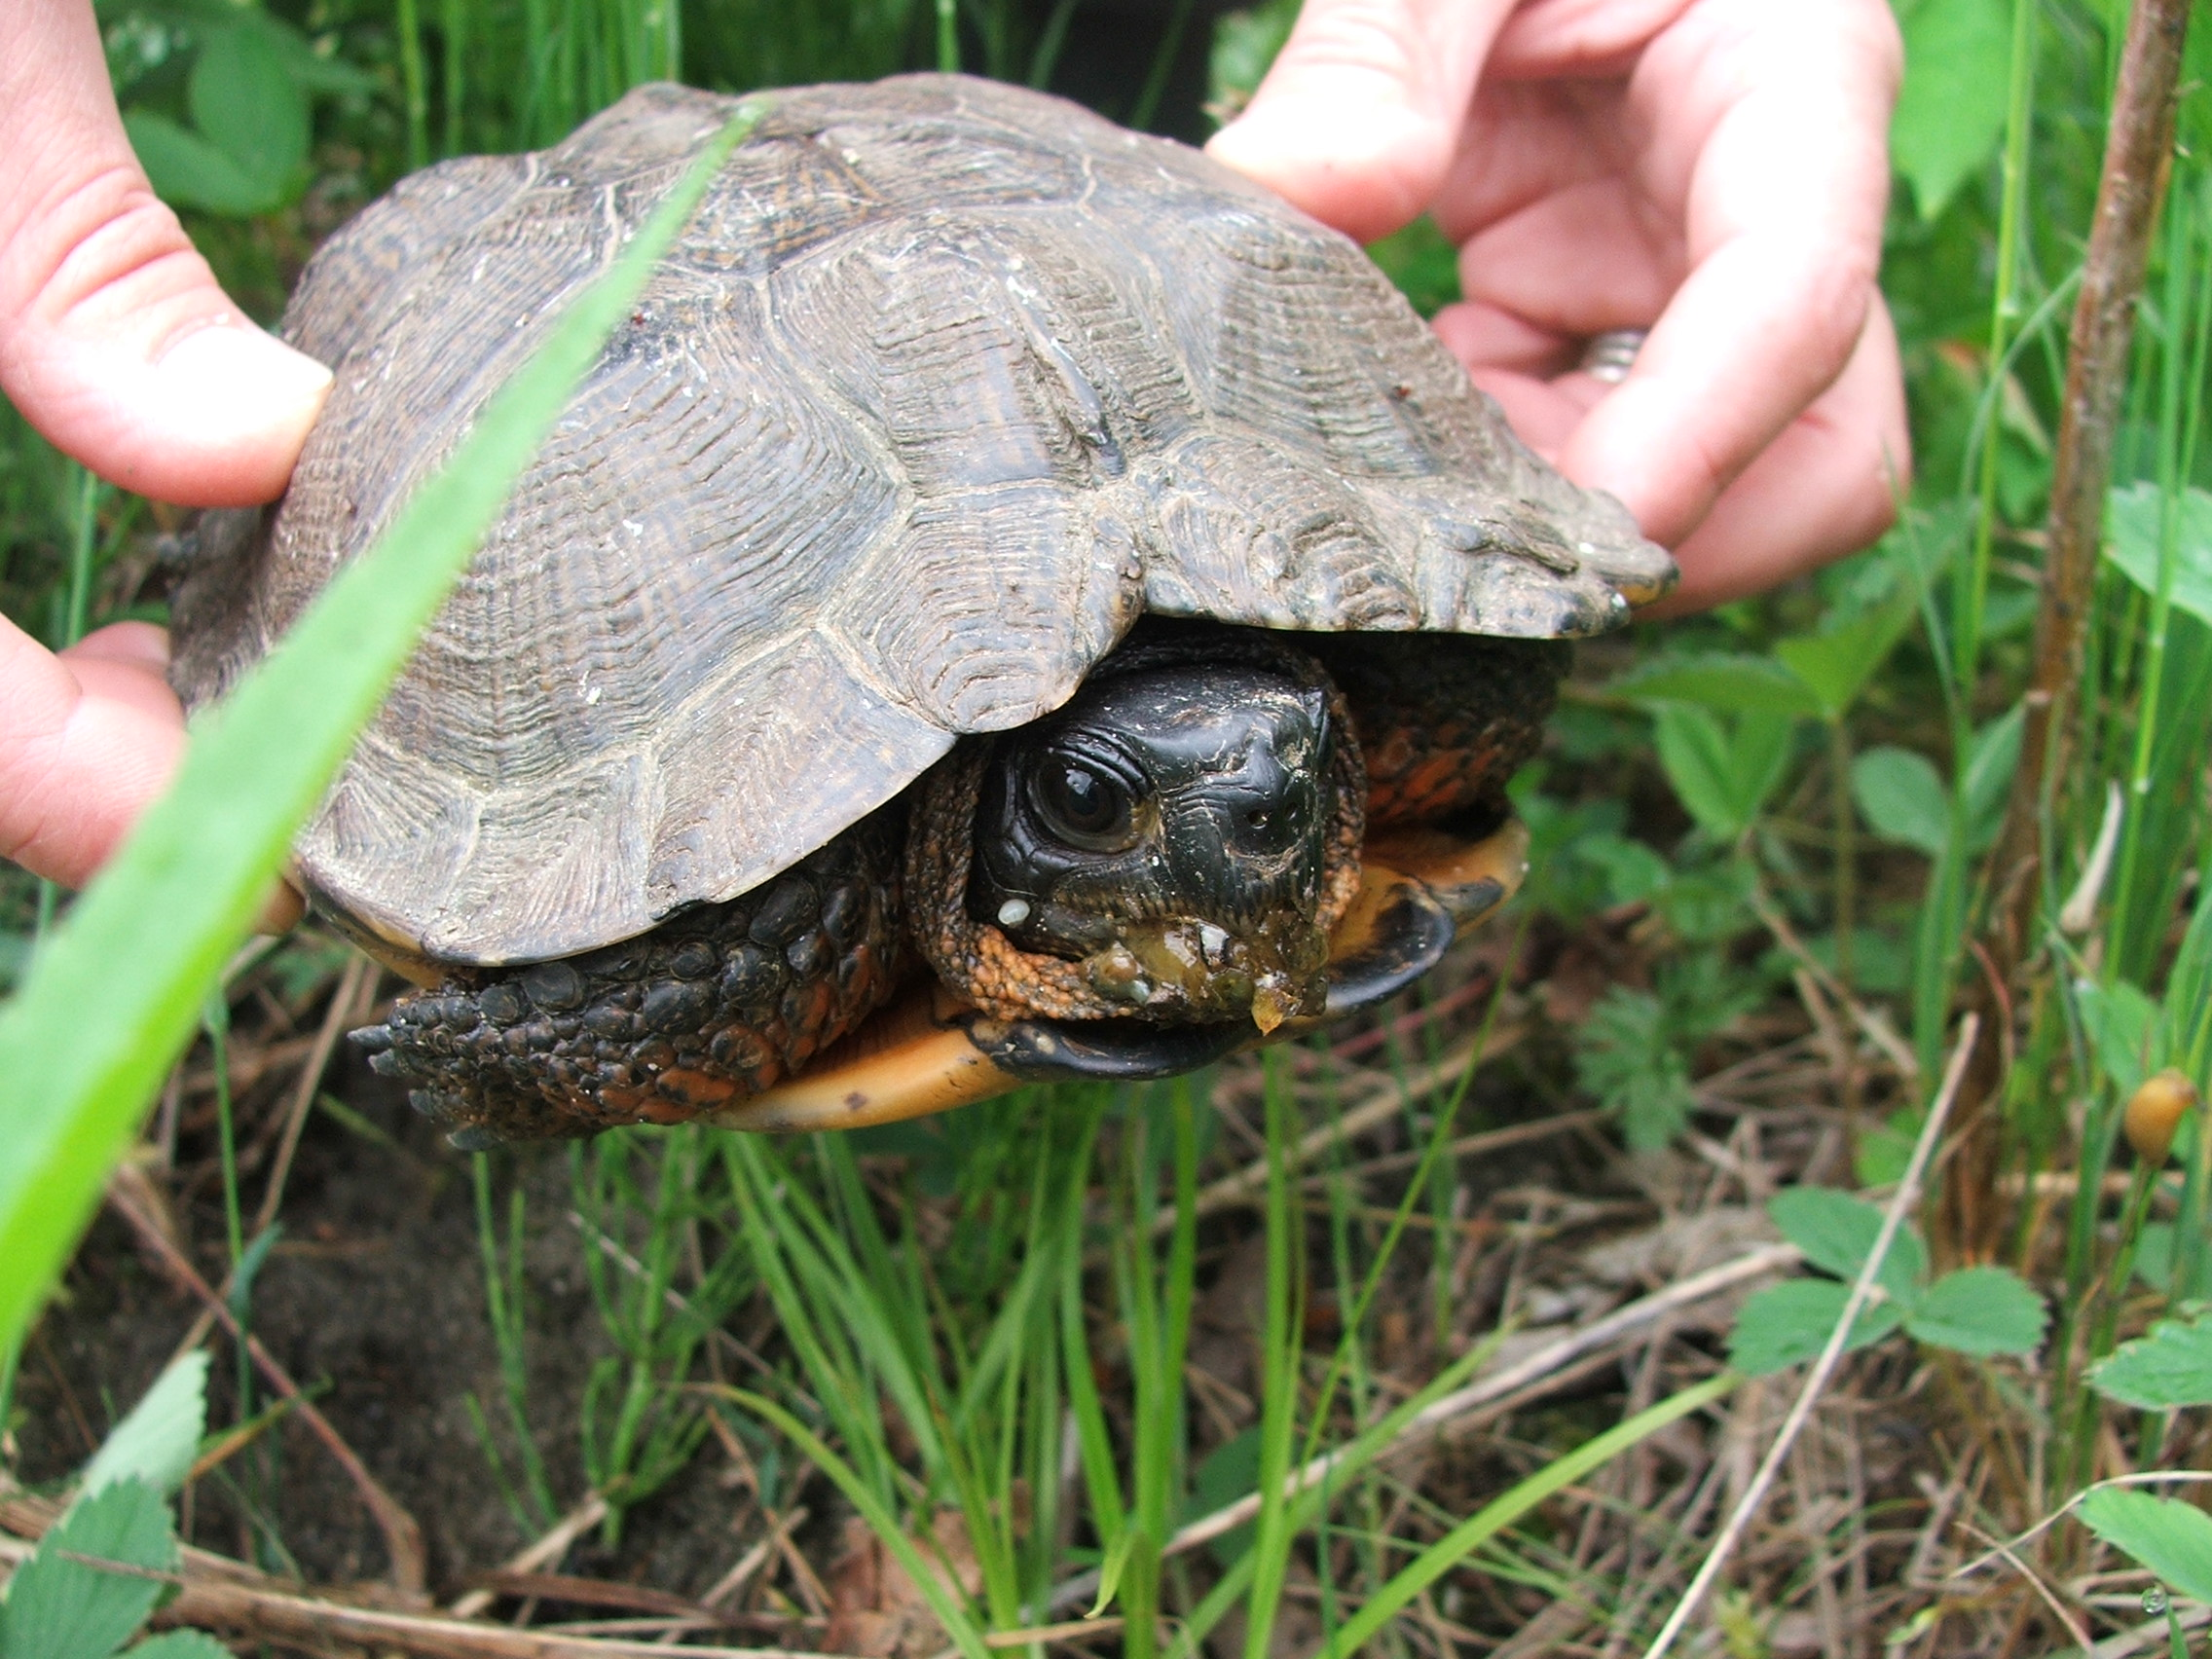 Wood turtle,  Glyptemys insculpta , a species of greatest conservation need and wildlife action plan priority in New Hampshire and Vermont.  Native geographic photographed this turtle while conducting riverine and floodplain natural community assessment. (Click Image to enlarge)